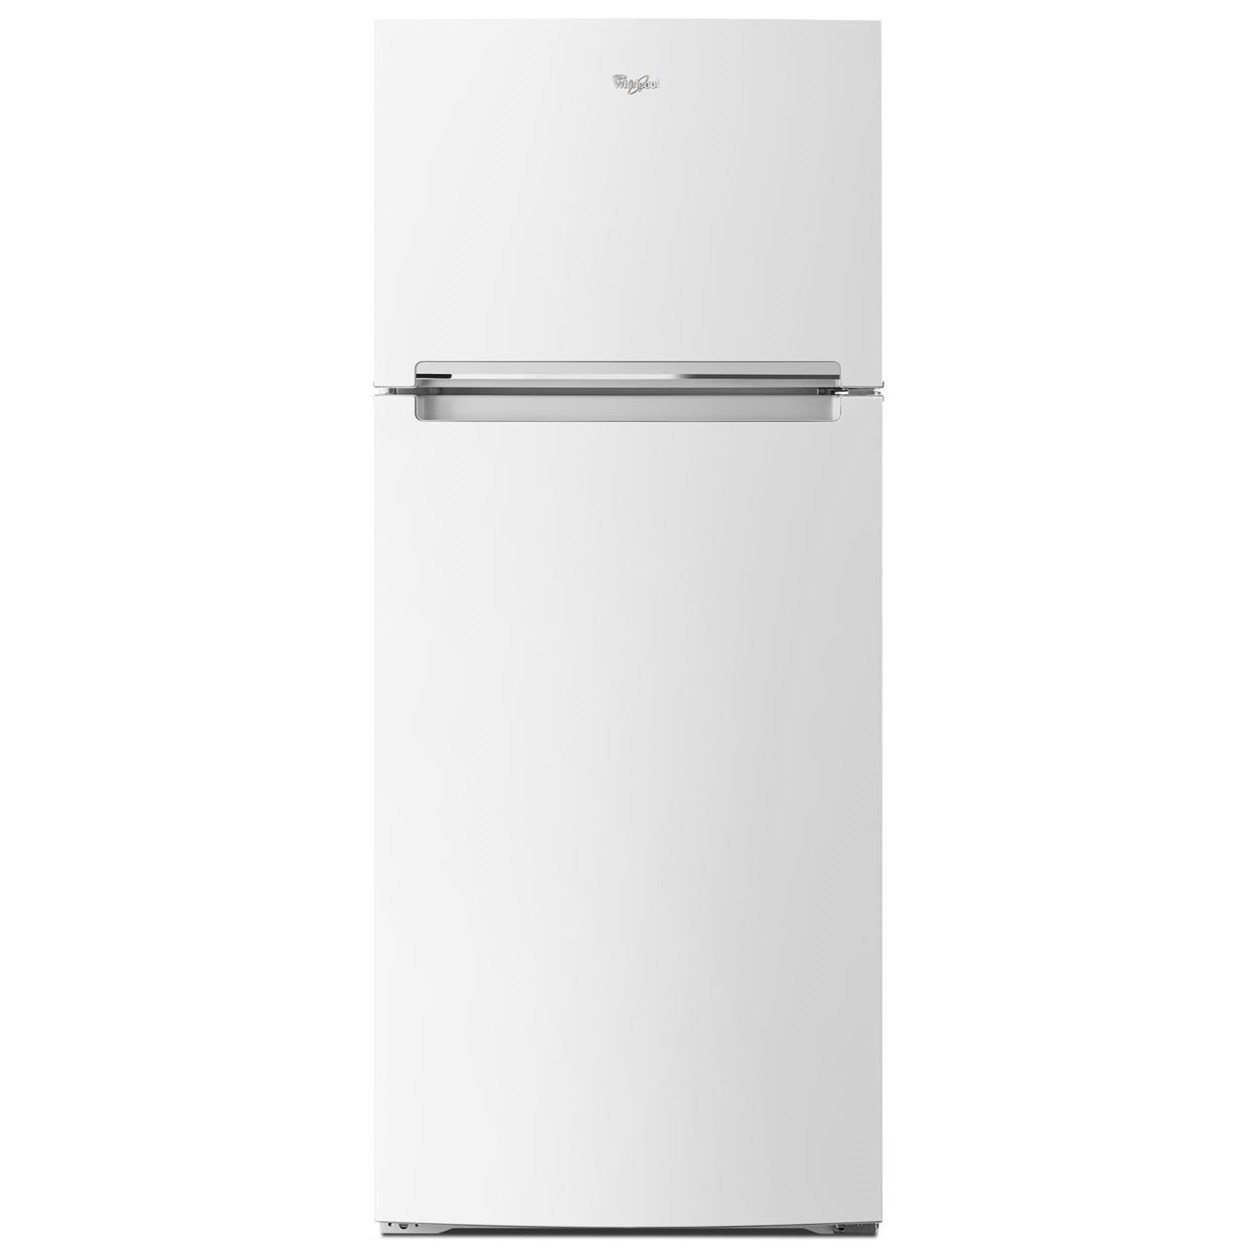 Whirlpool Top Mount Refrigerators 28-inch Wide Whirlpool® Refrigerator - Item Number: WRT518SZFW